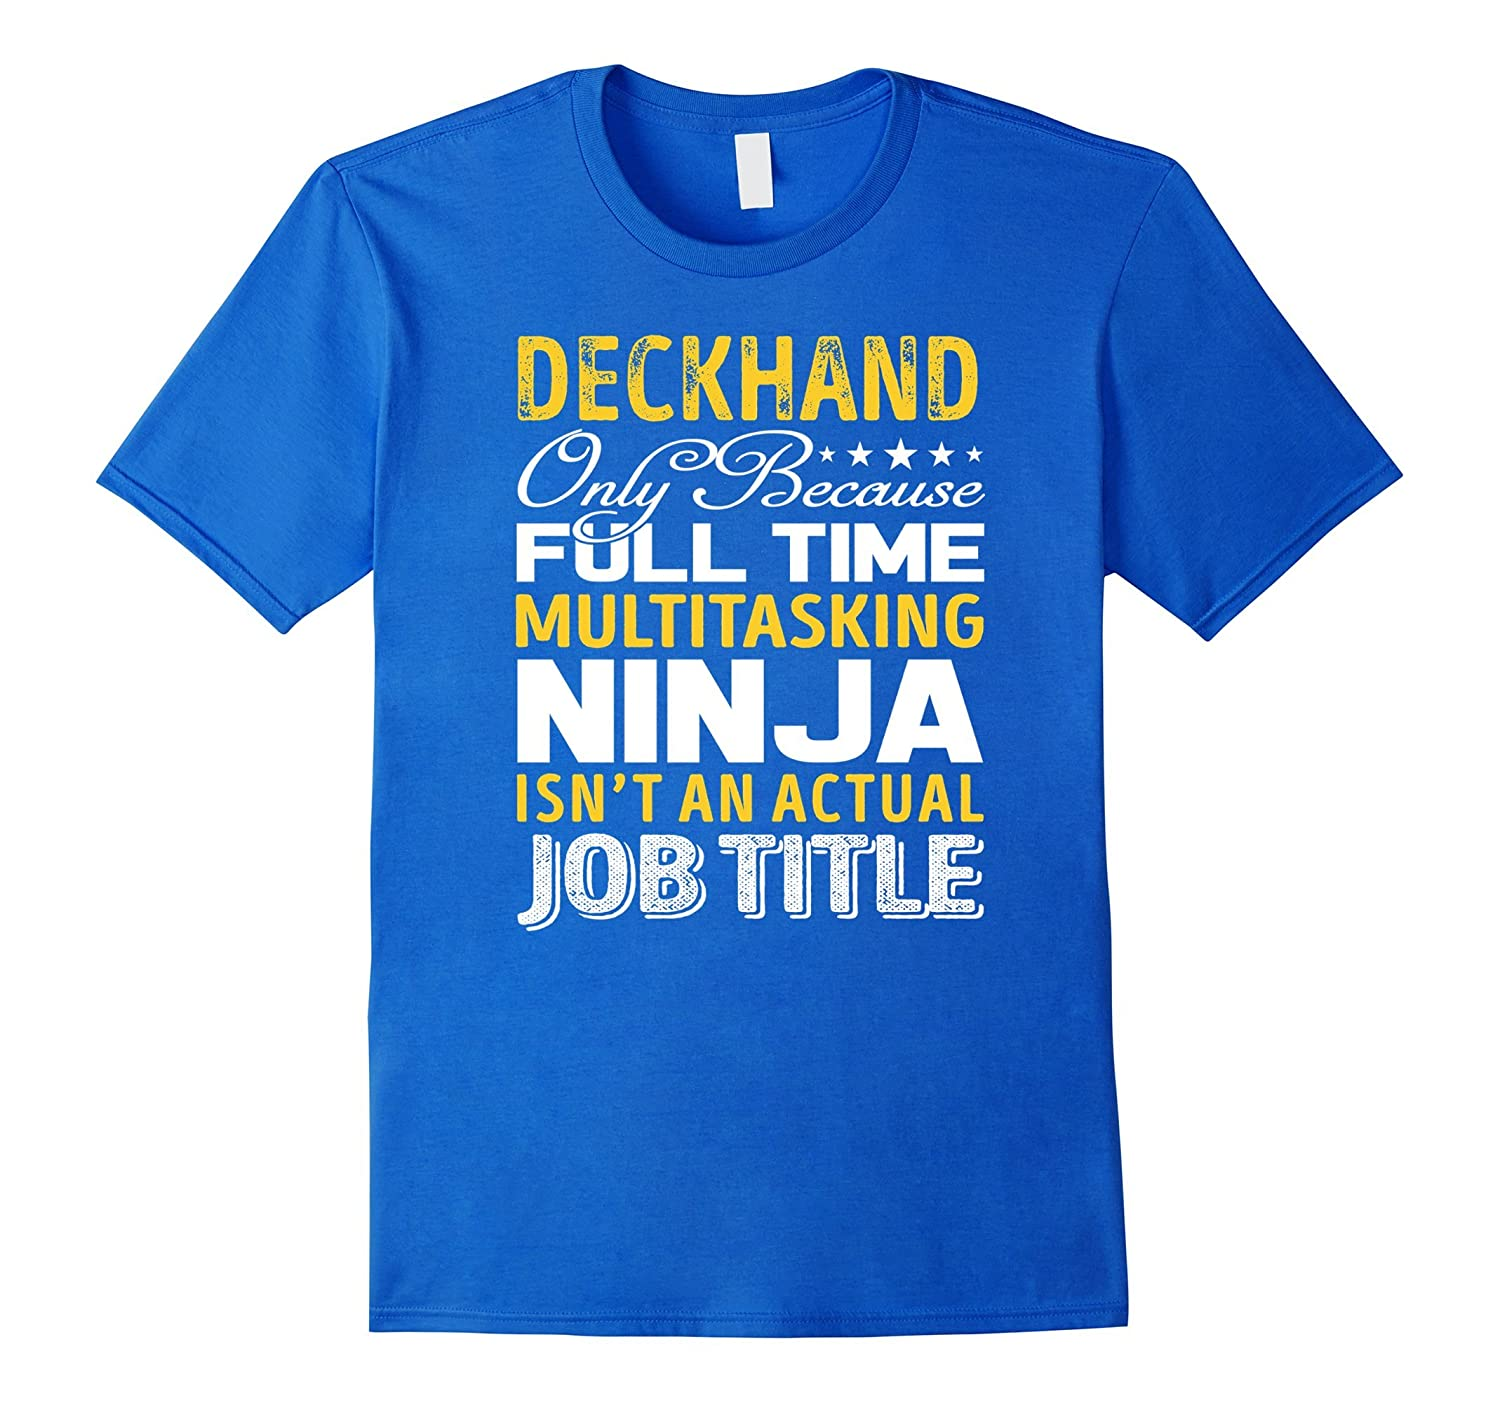 Deckhand Is Not An Actual Job Title TShirt